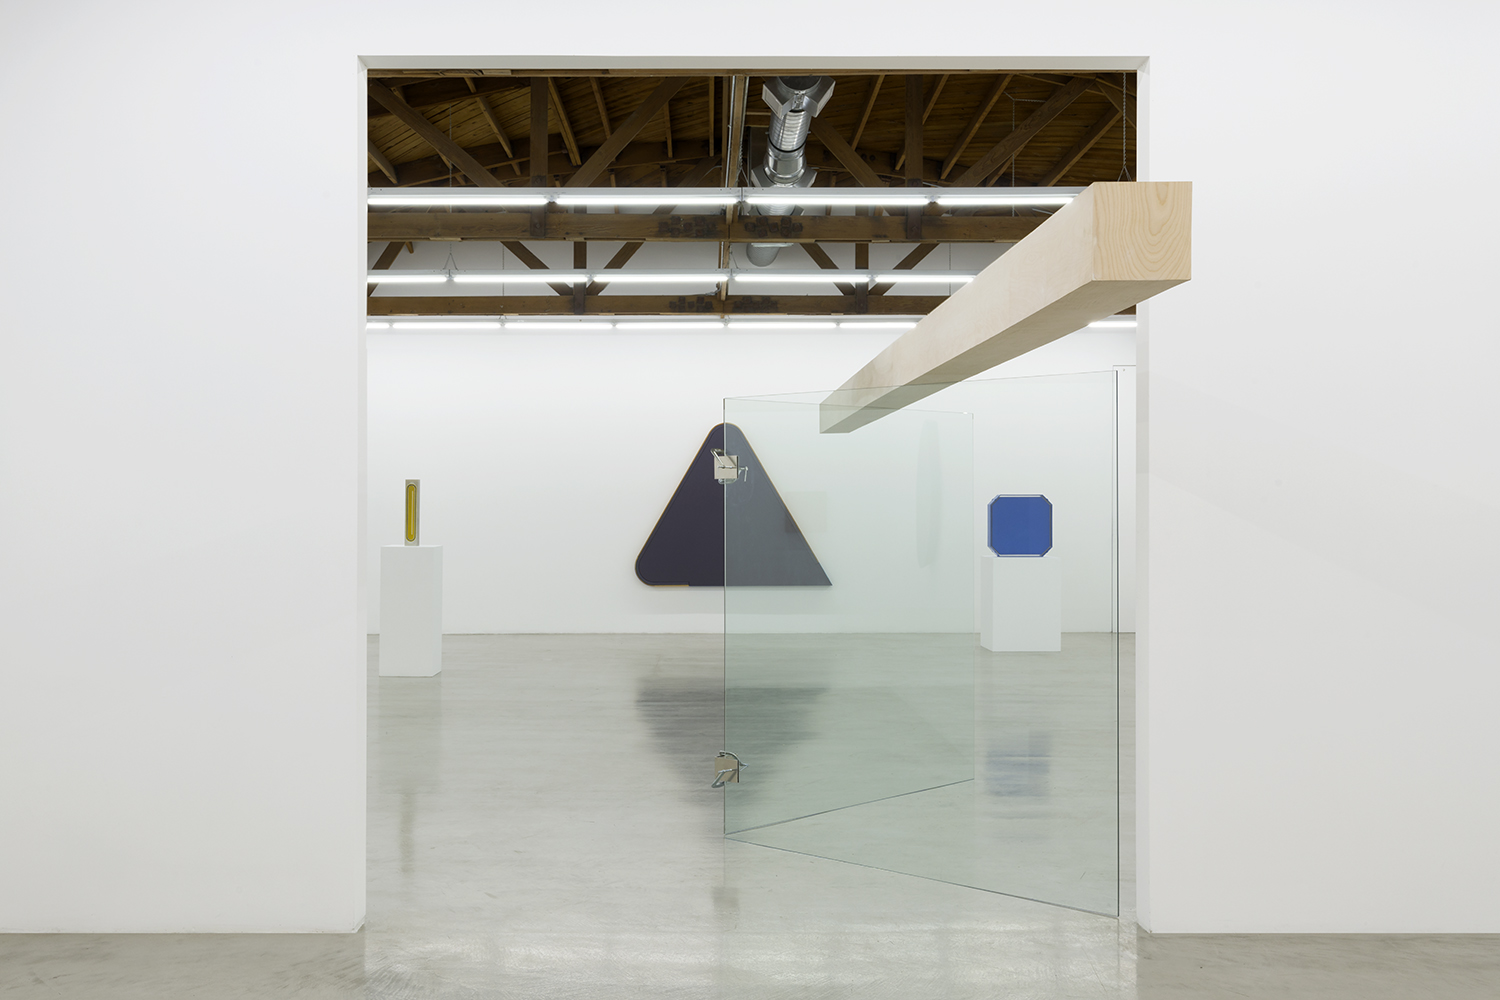 Installation view of Tony Delap: A Career Survey, with Floating Lady II two glass panels connected by metal bits with a large wooden beam set on top at the center of the image